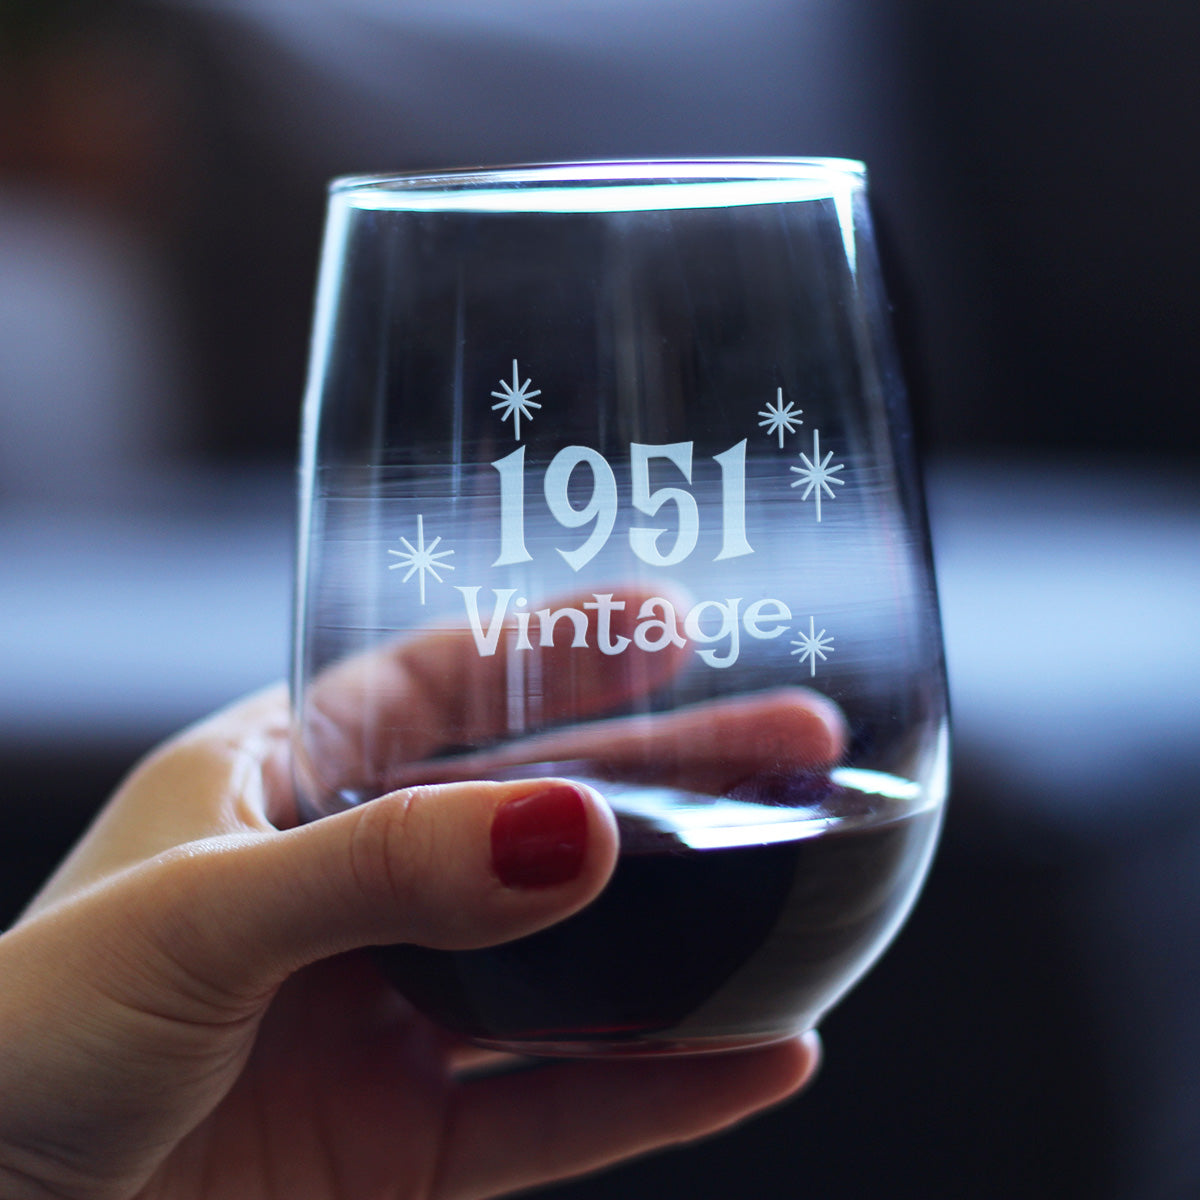 Vintage 1951 - 17 Ounce Stemless Wine Glass